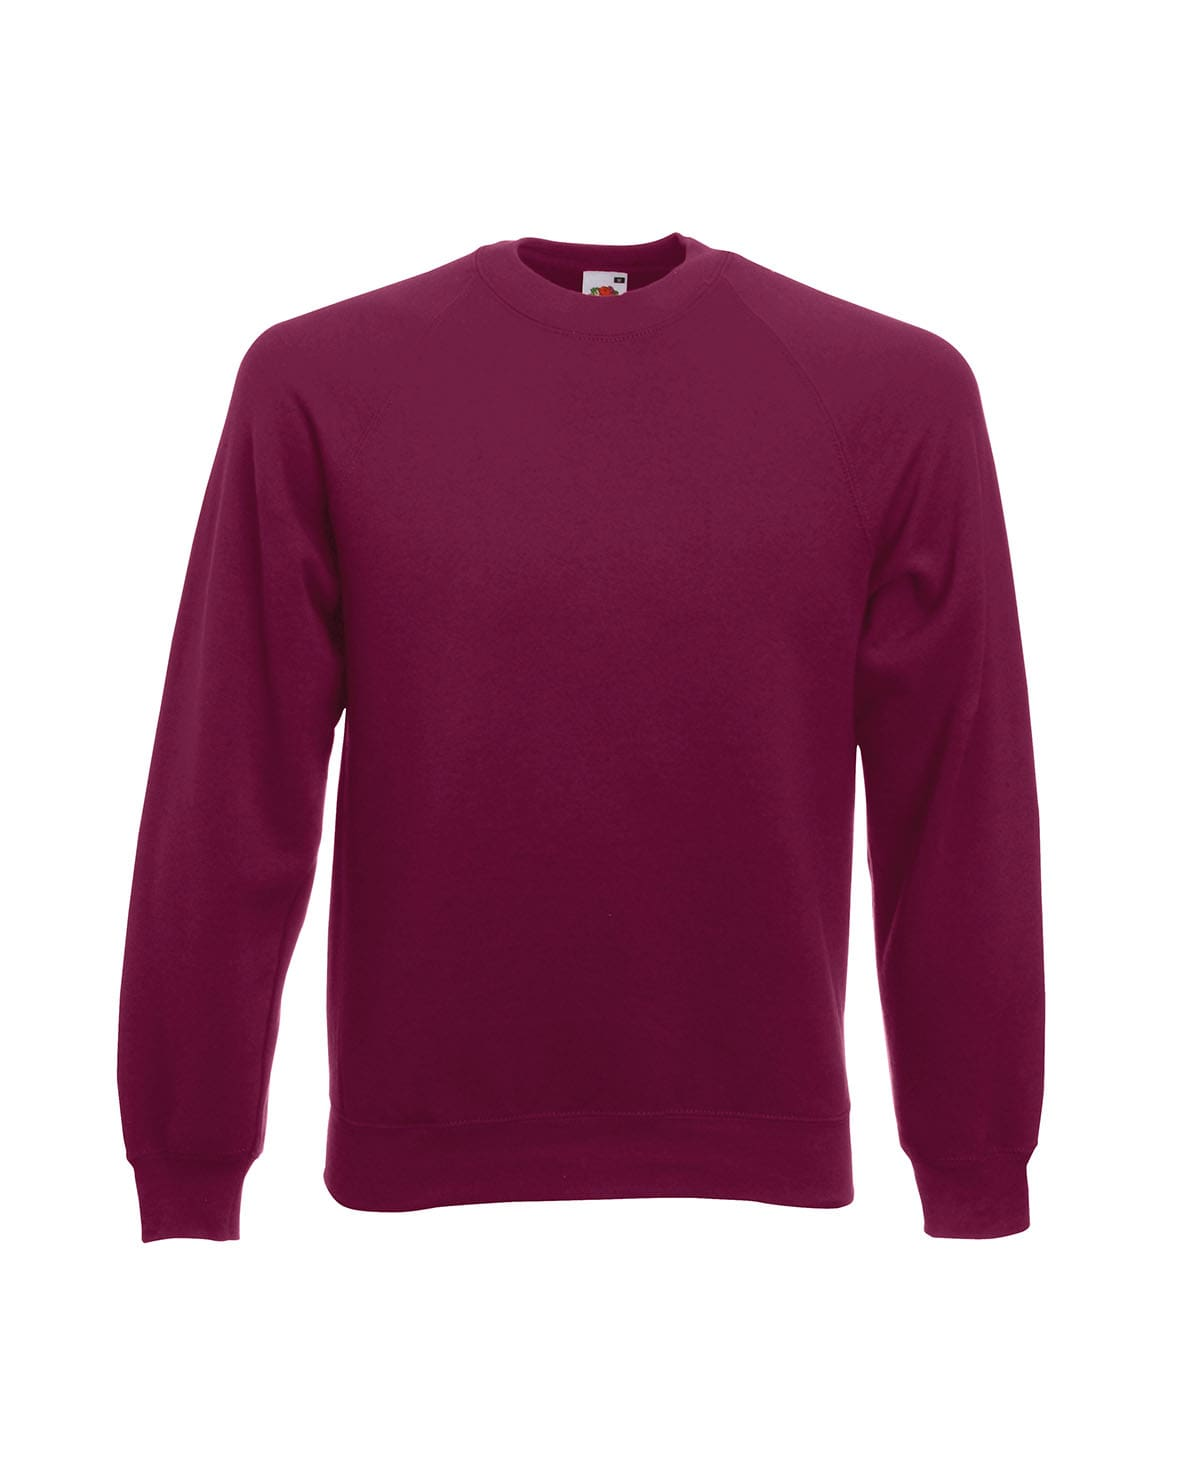 Workwear Sweatshirts Branded with Your Design or Logo Promoting you and your Business and Making you Stand Out